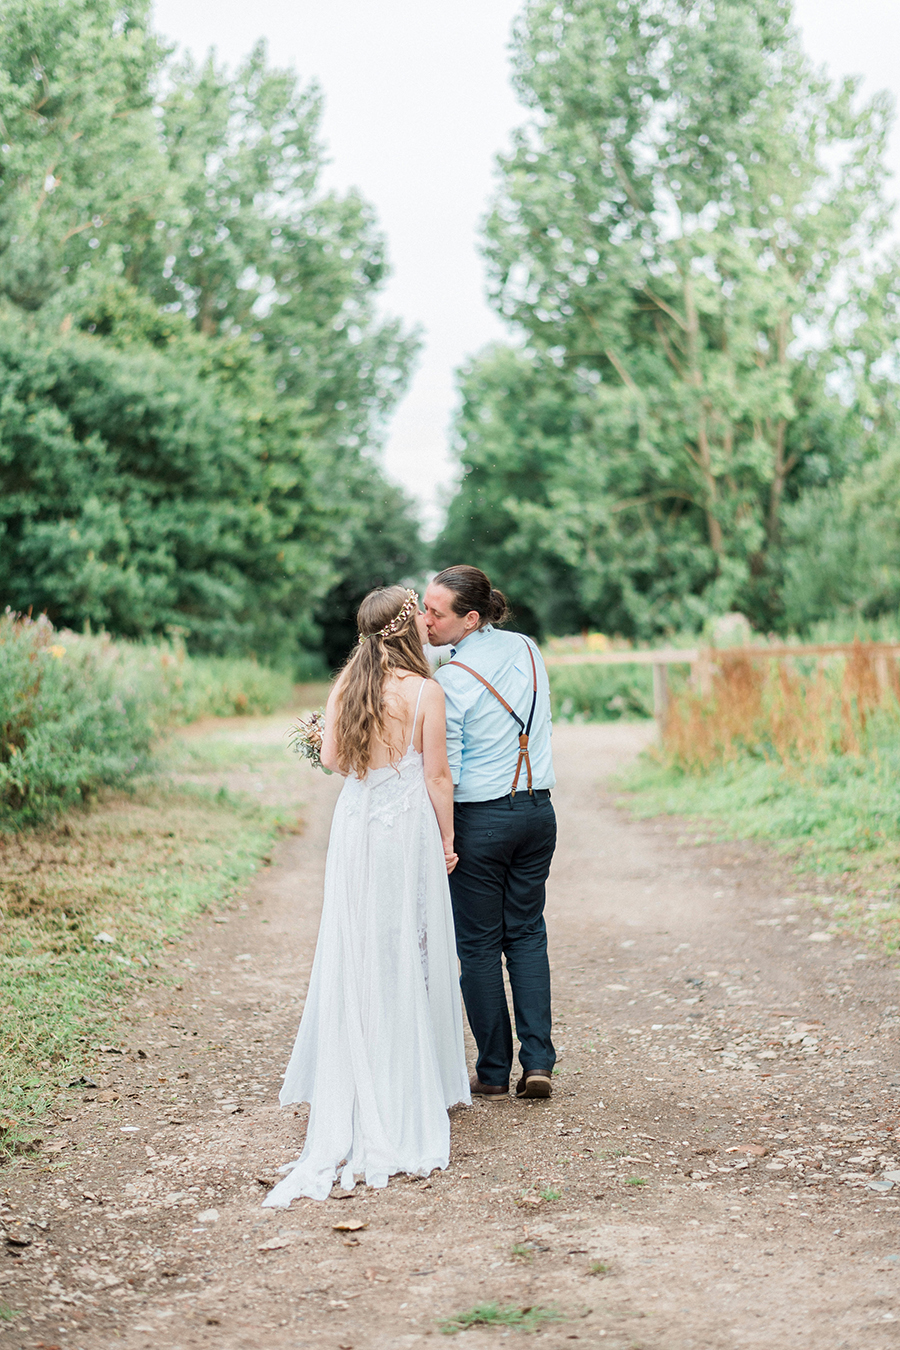 Dreamy boho wedding at Houchins Farm with images by Kathryn Hopkins Photography (29)